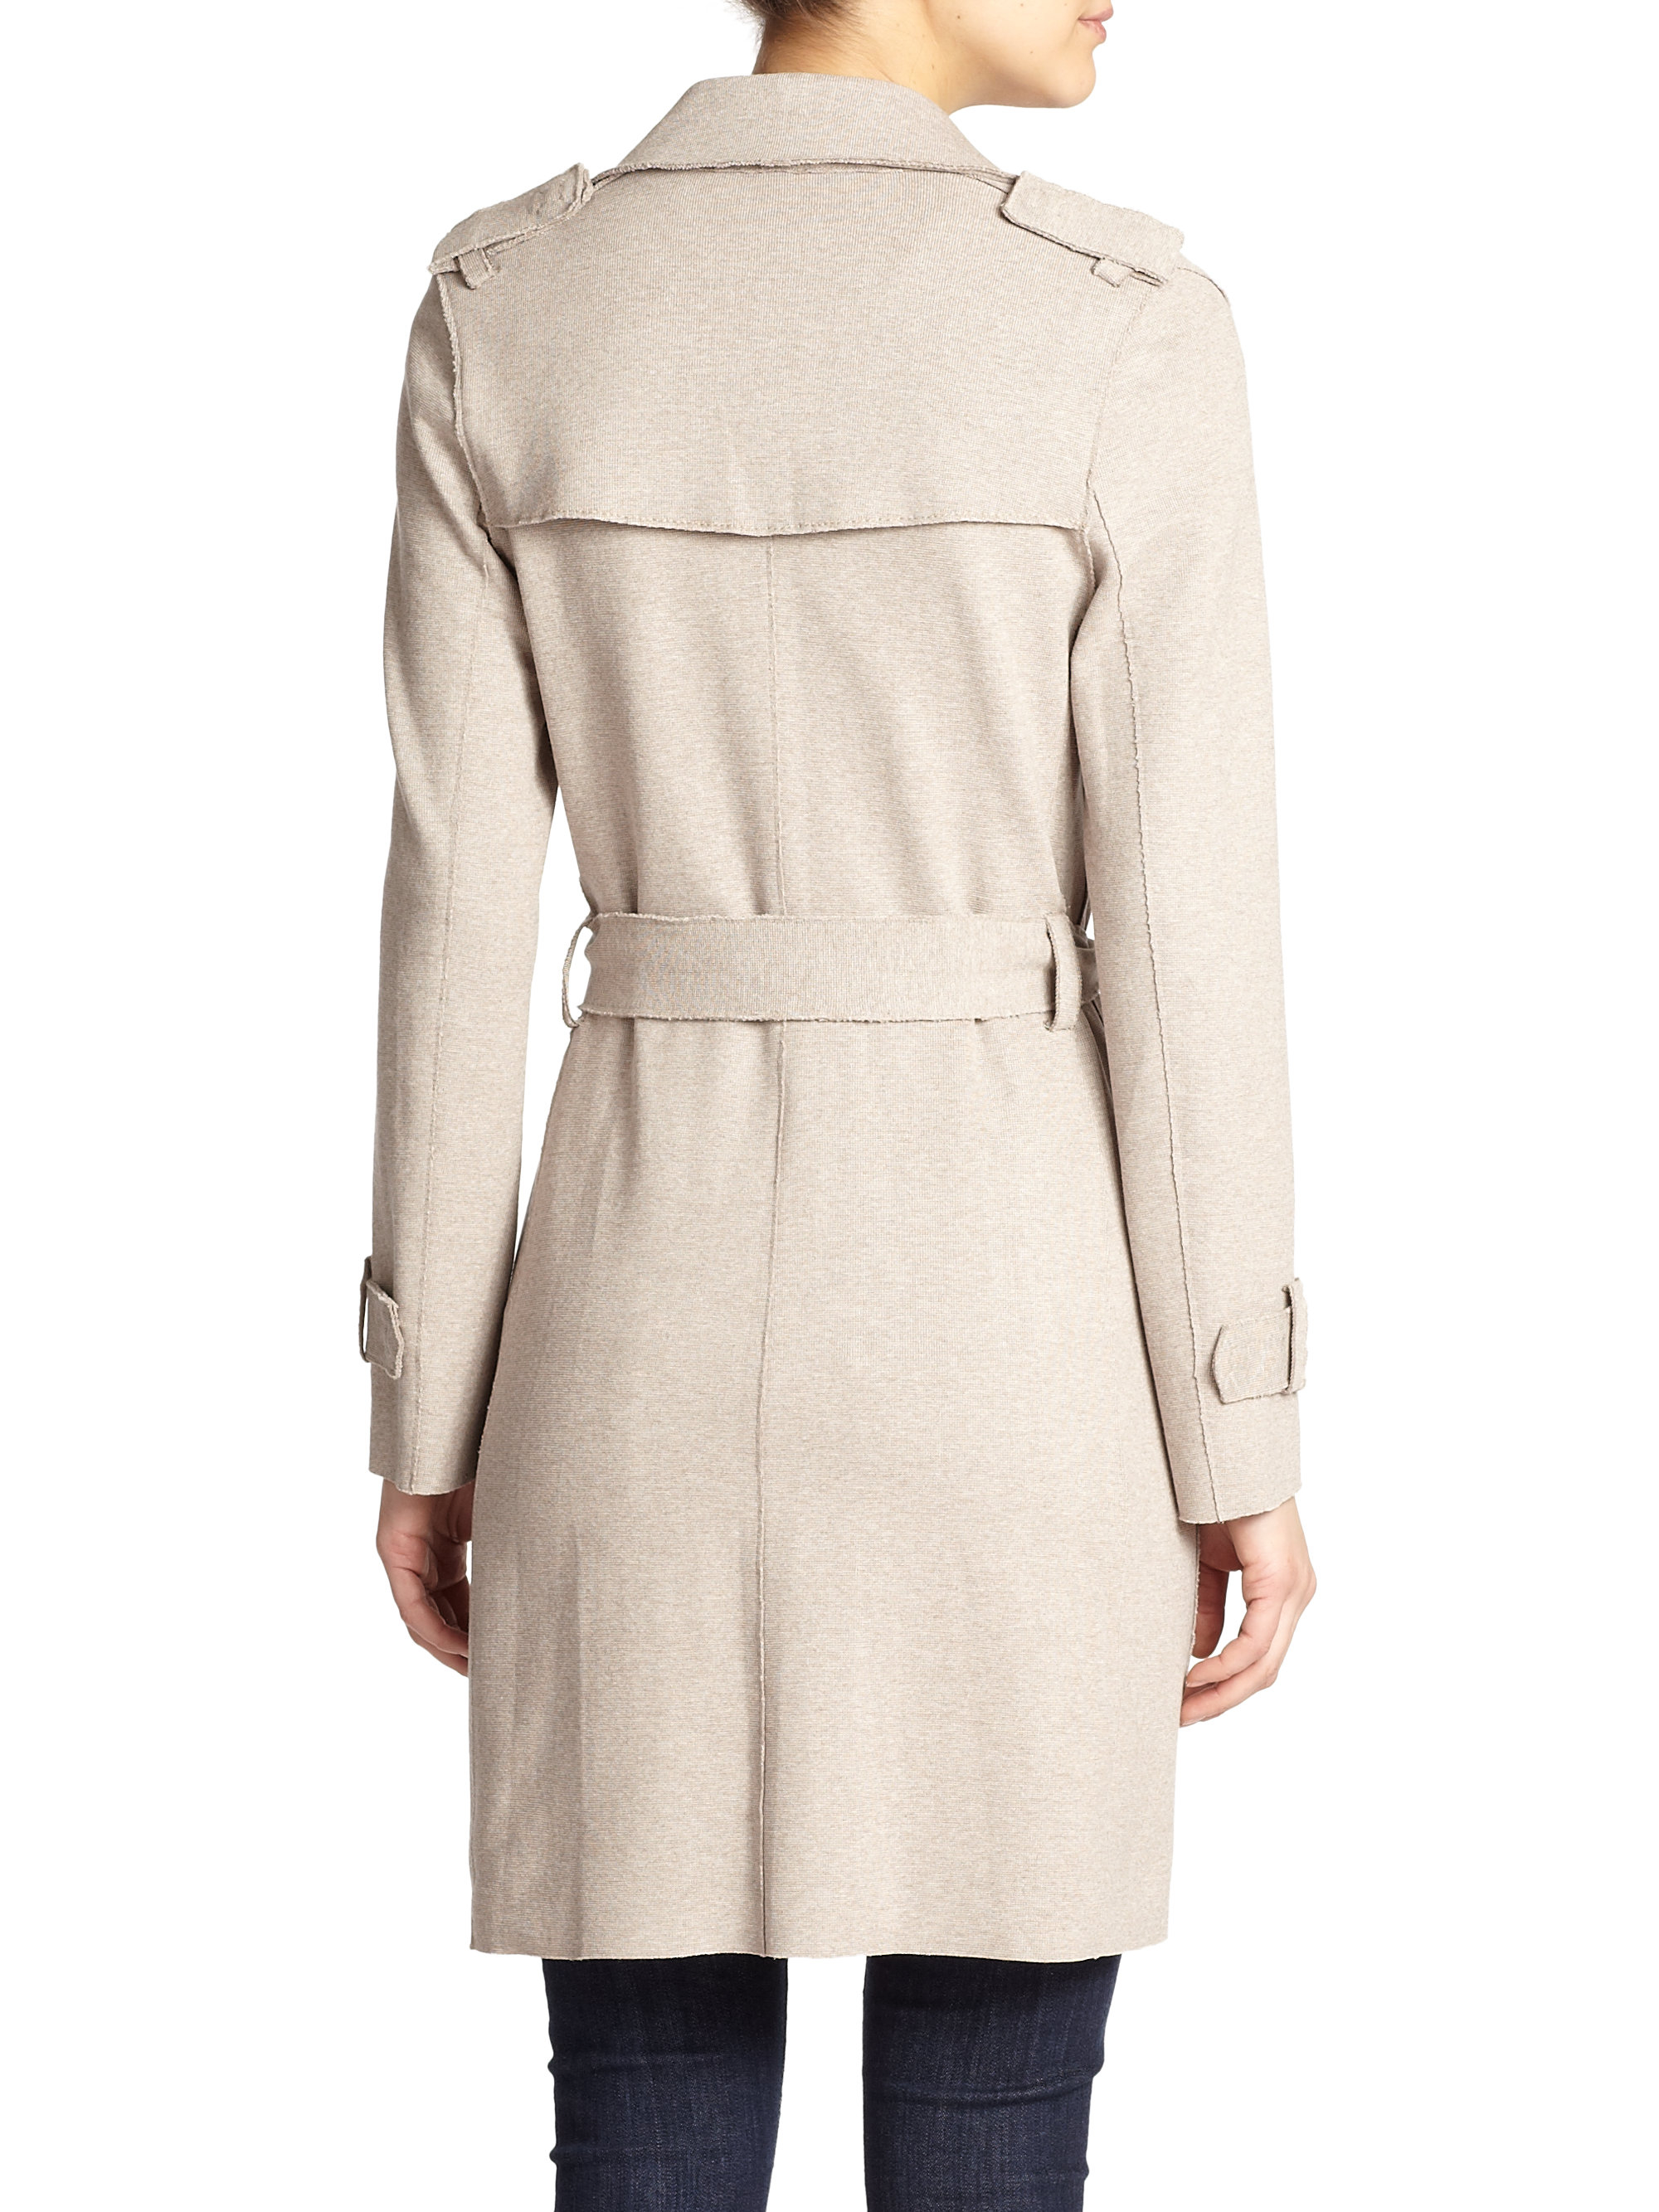 7854a6df41fcf Lyst - Harris Wharf London Stretch Trenchcoat in Natural